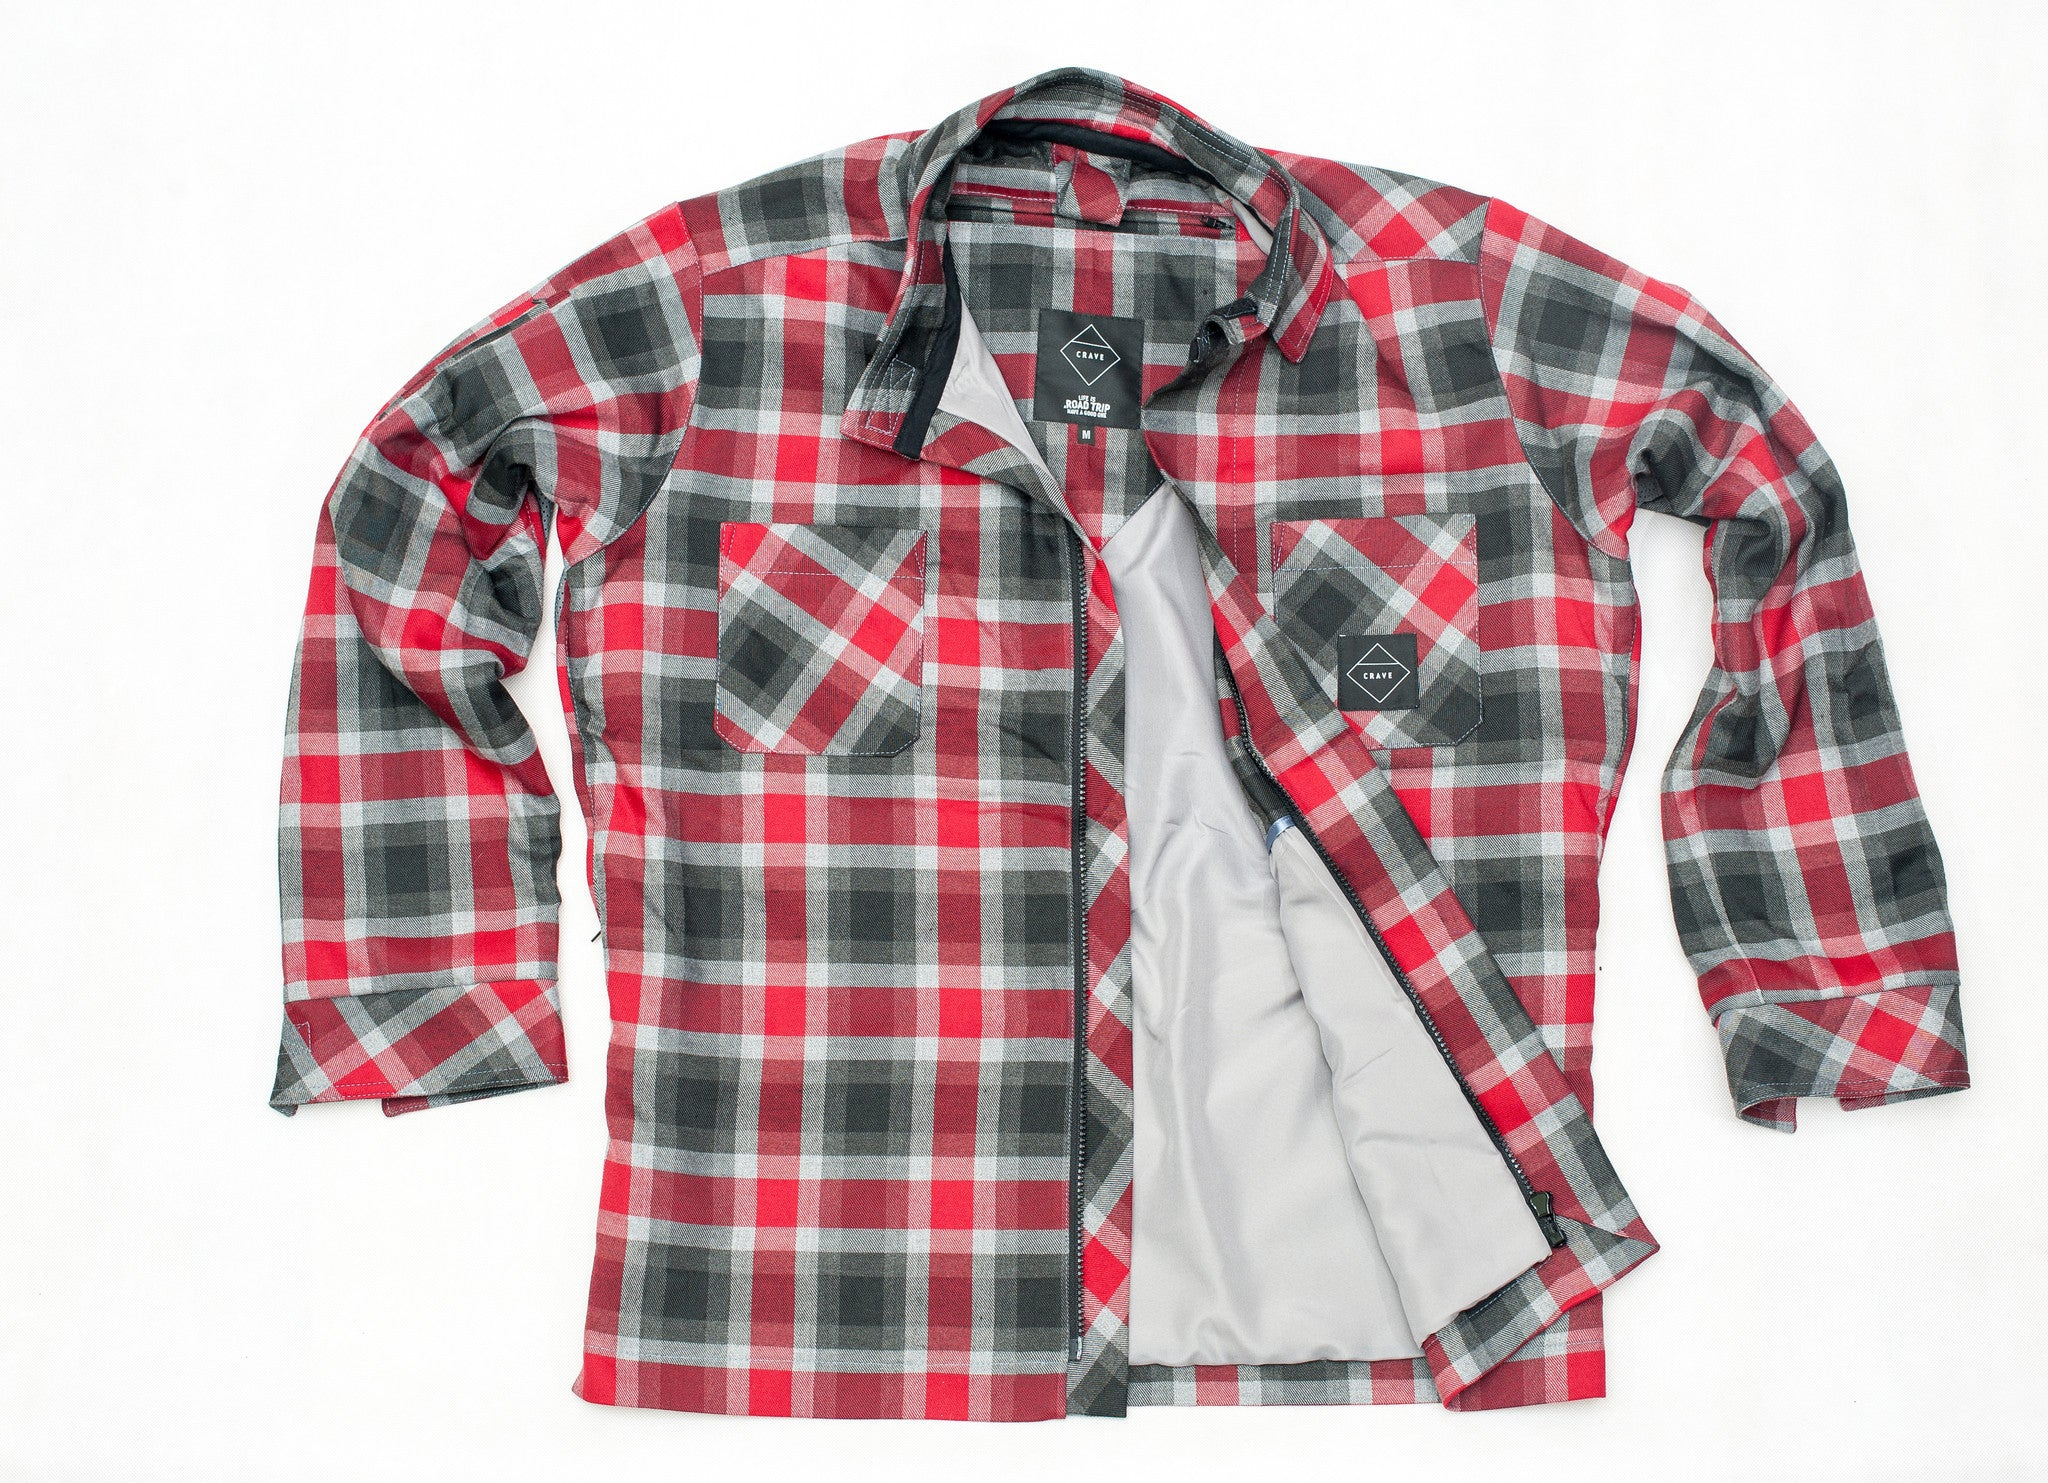 AXE 2 Motorcycle SHIRT - FLAME